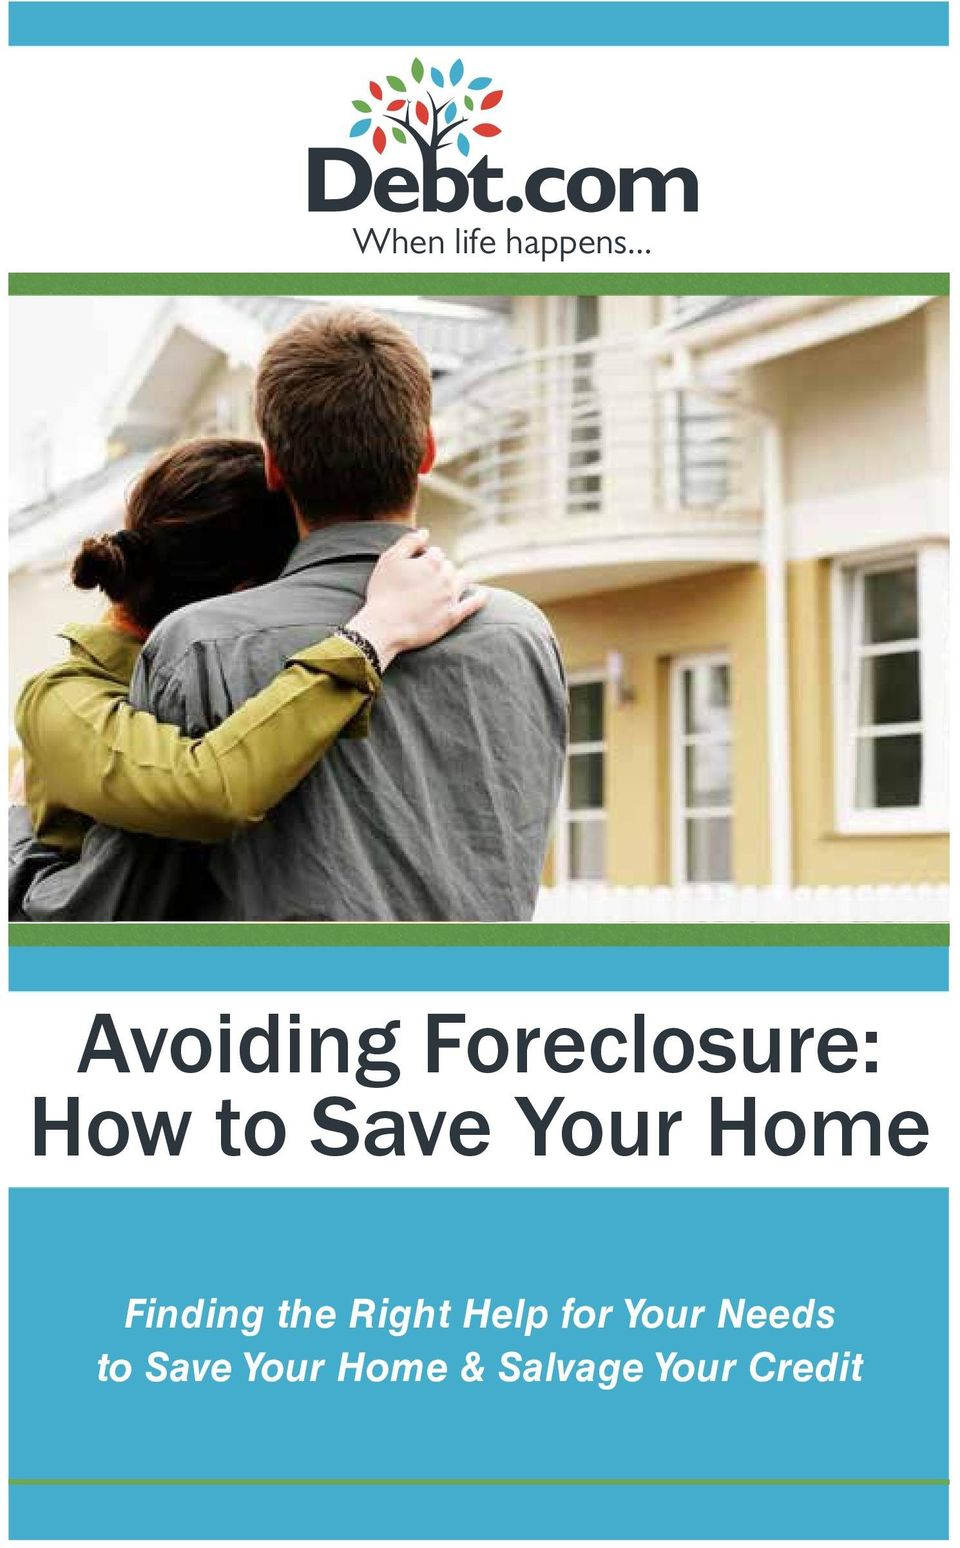 Save Your Home Finding the Right